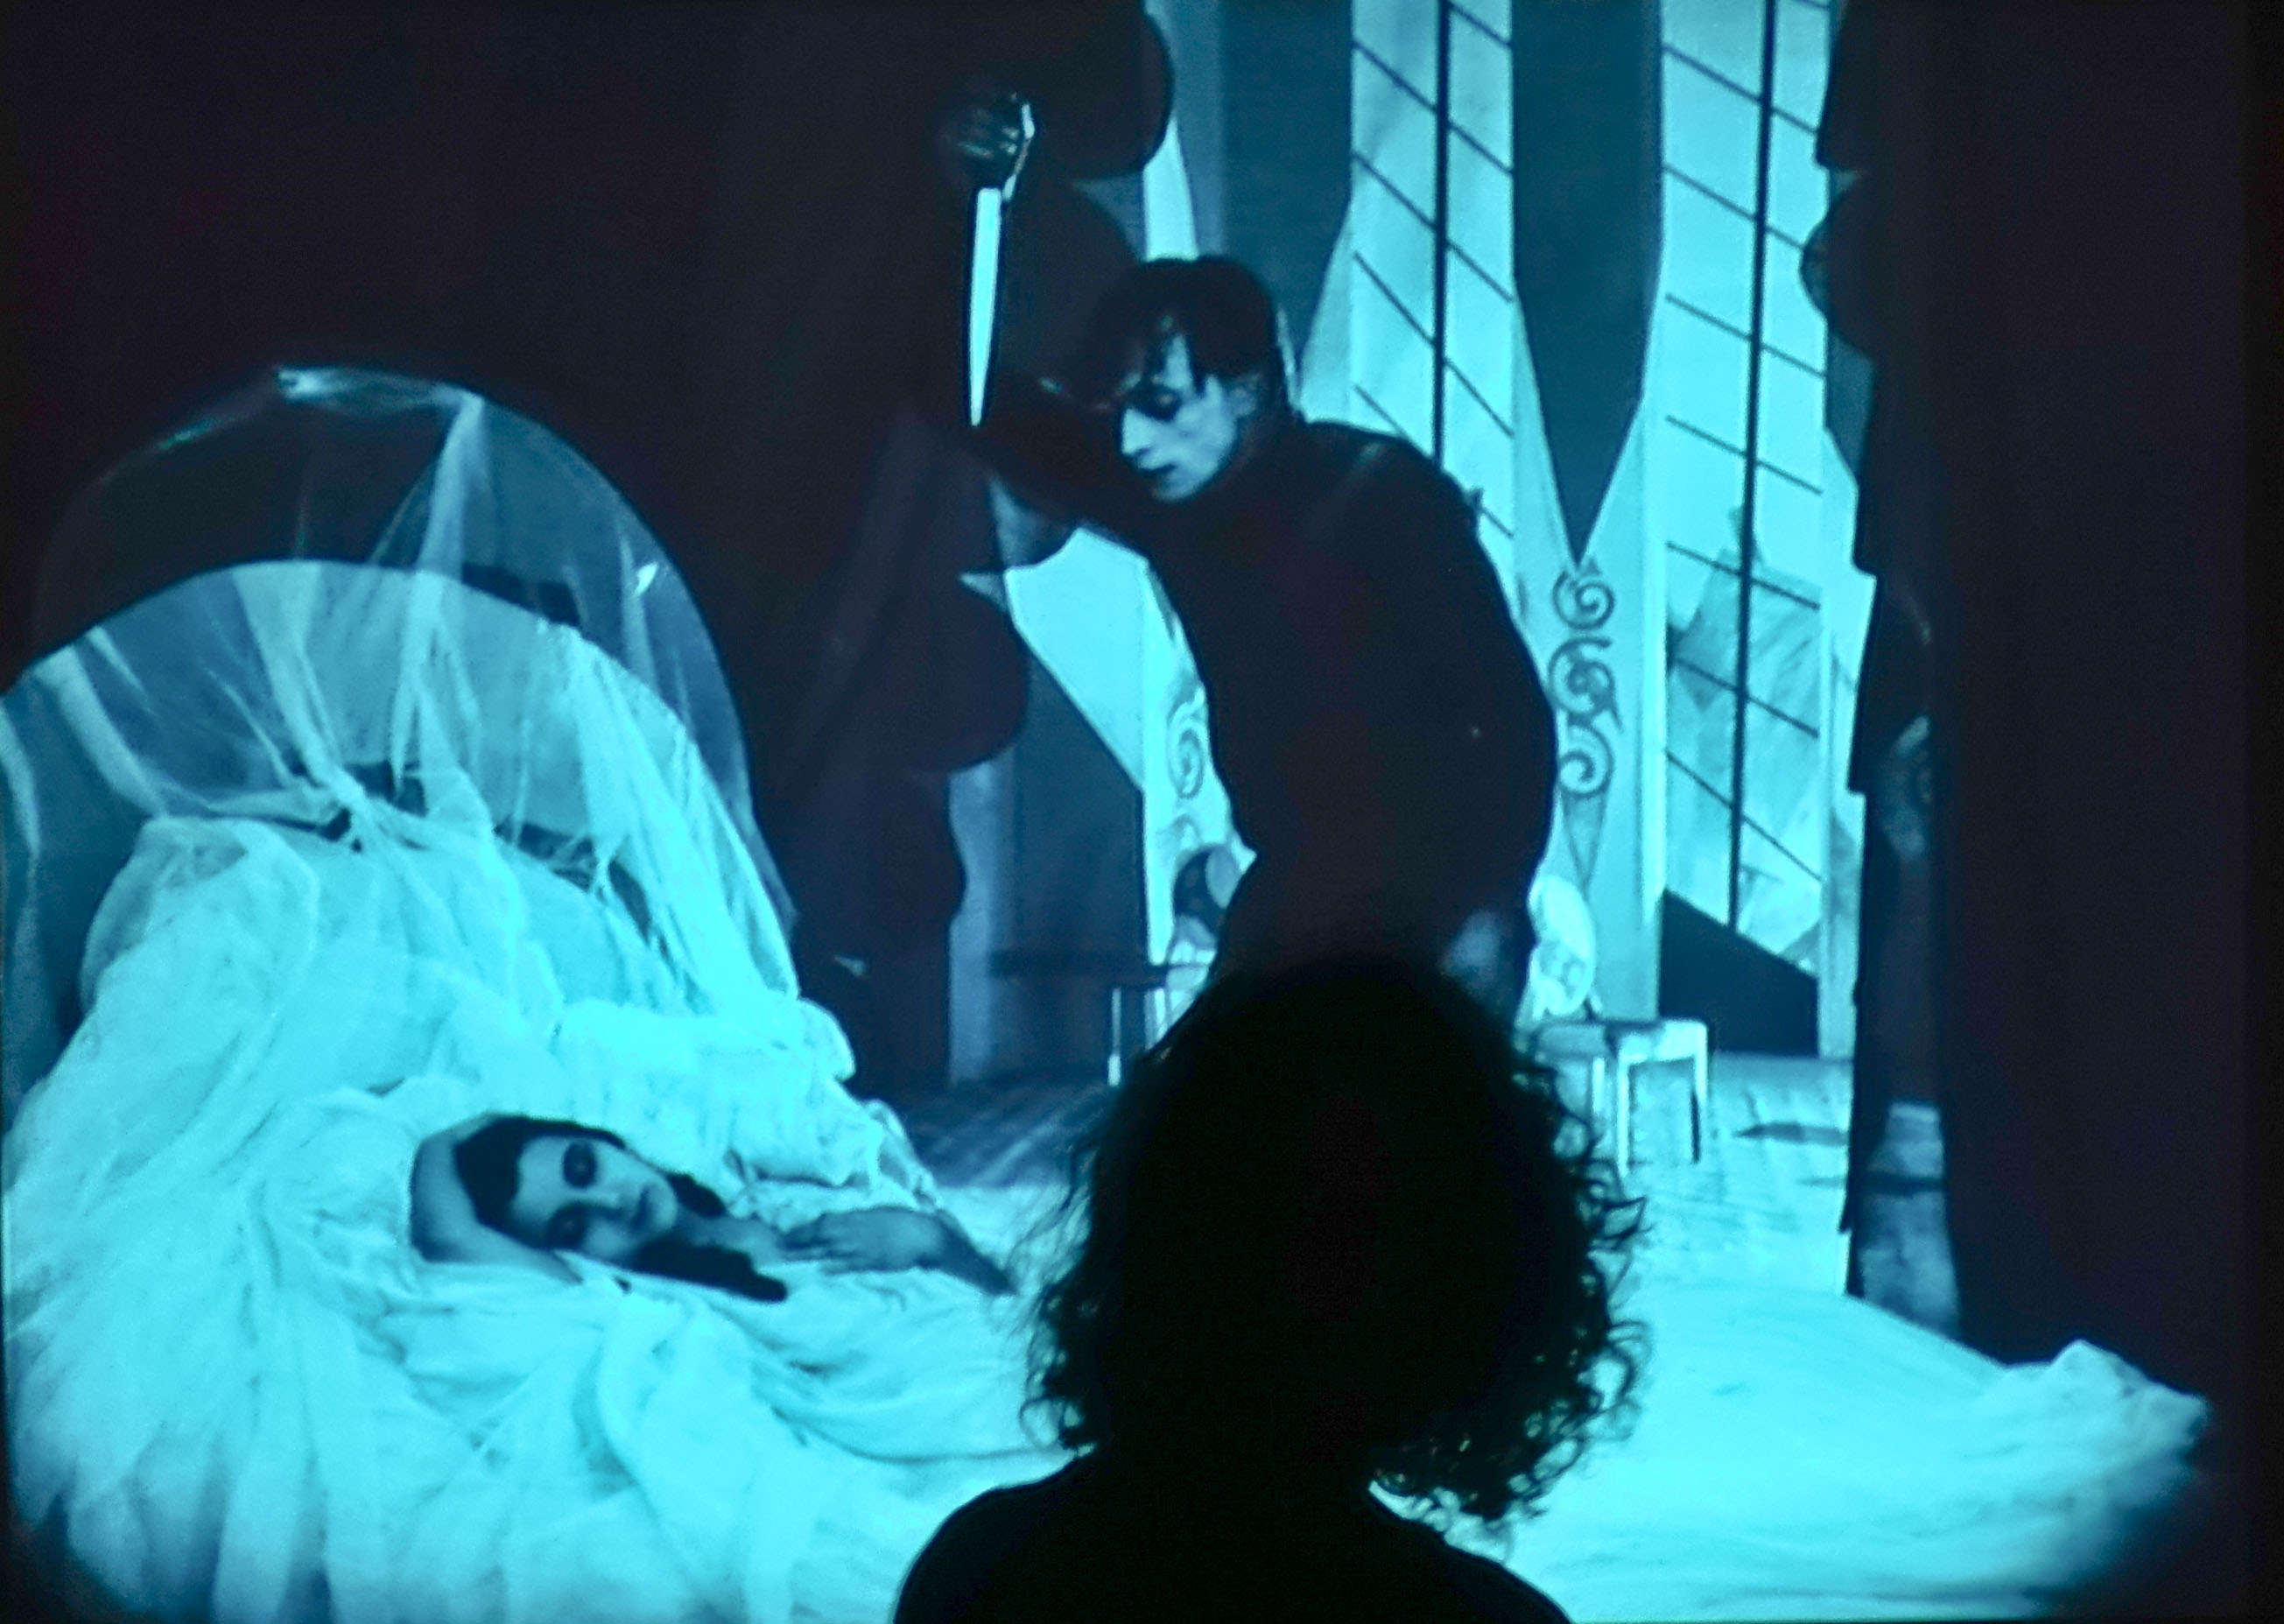 Poet, singer, and performer Ingrid Chavez dancing with The Cabinet of Dr. Caligari, newly re-scored by Paul D. Miller (Photo by Michelle Aldredge)